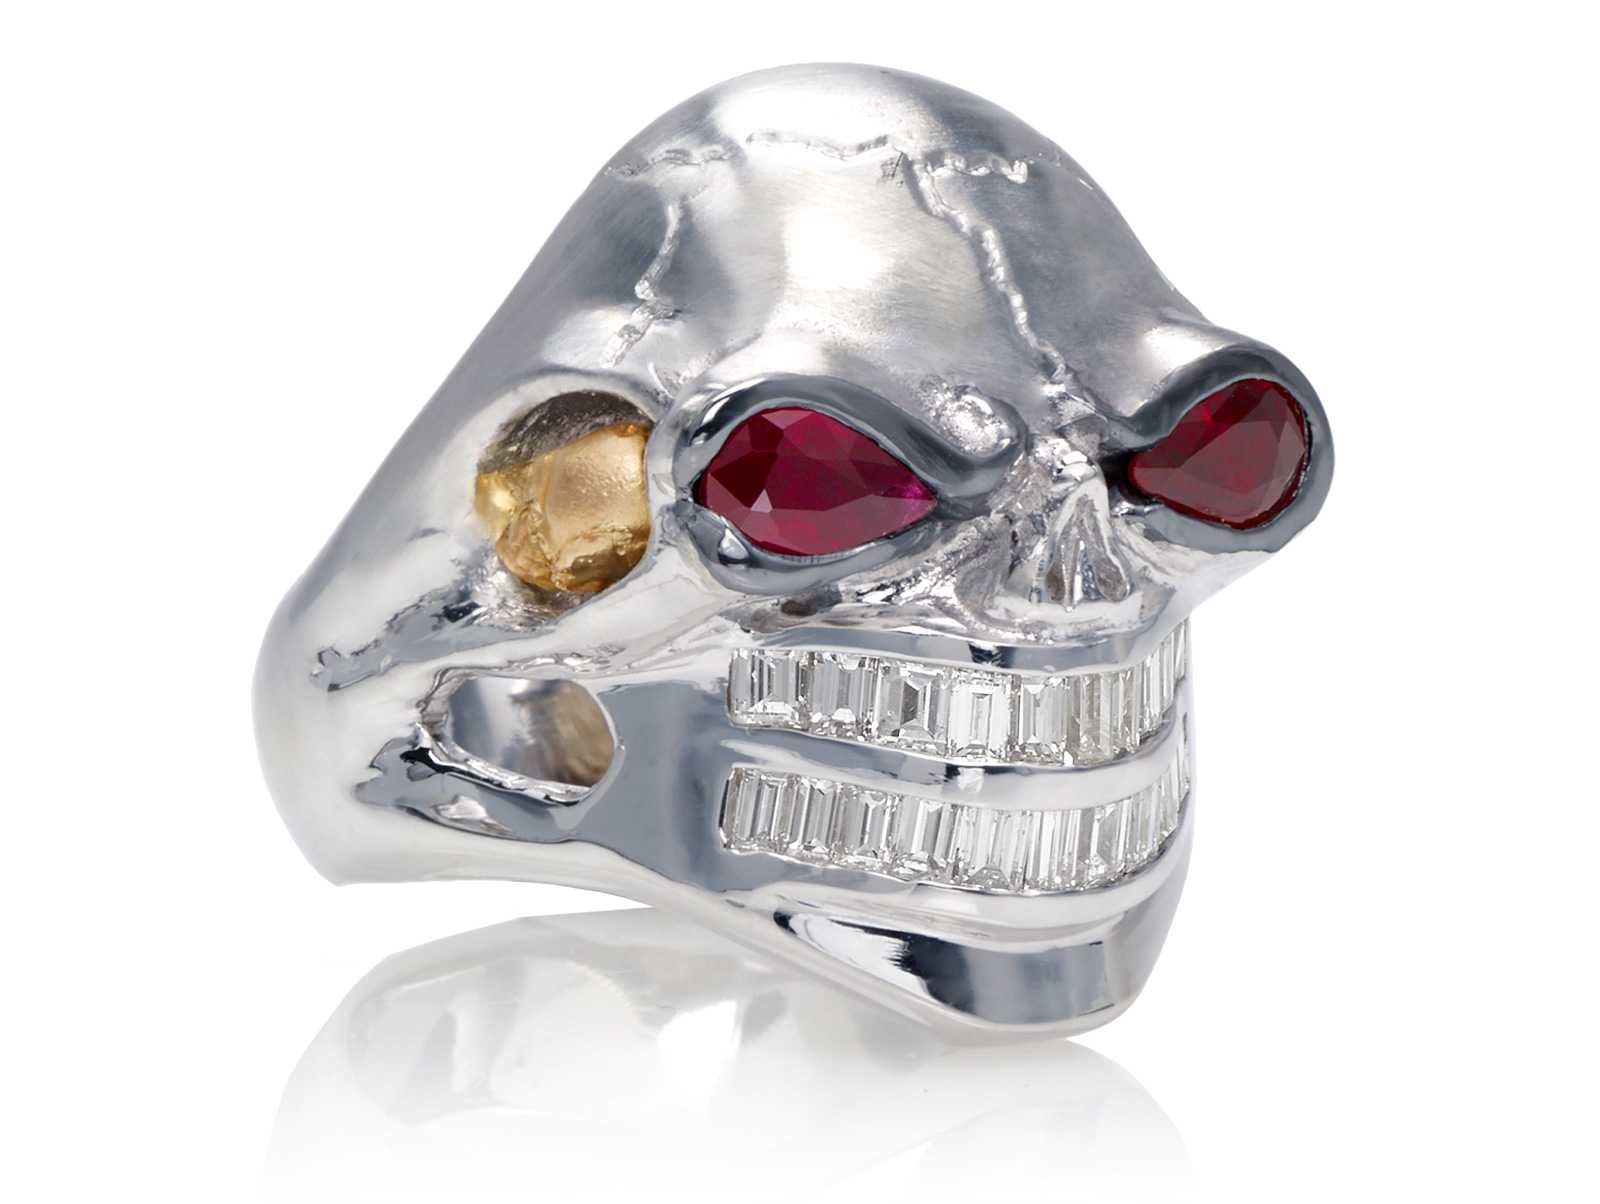 RG3020WH-A Monstrous Max Skull Ring (Front Side View) in White Gold and Rose Gold with Ruby eyes and Diamond teeth, designed by Steve Soffa